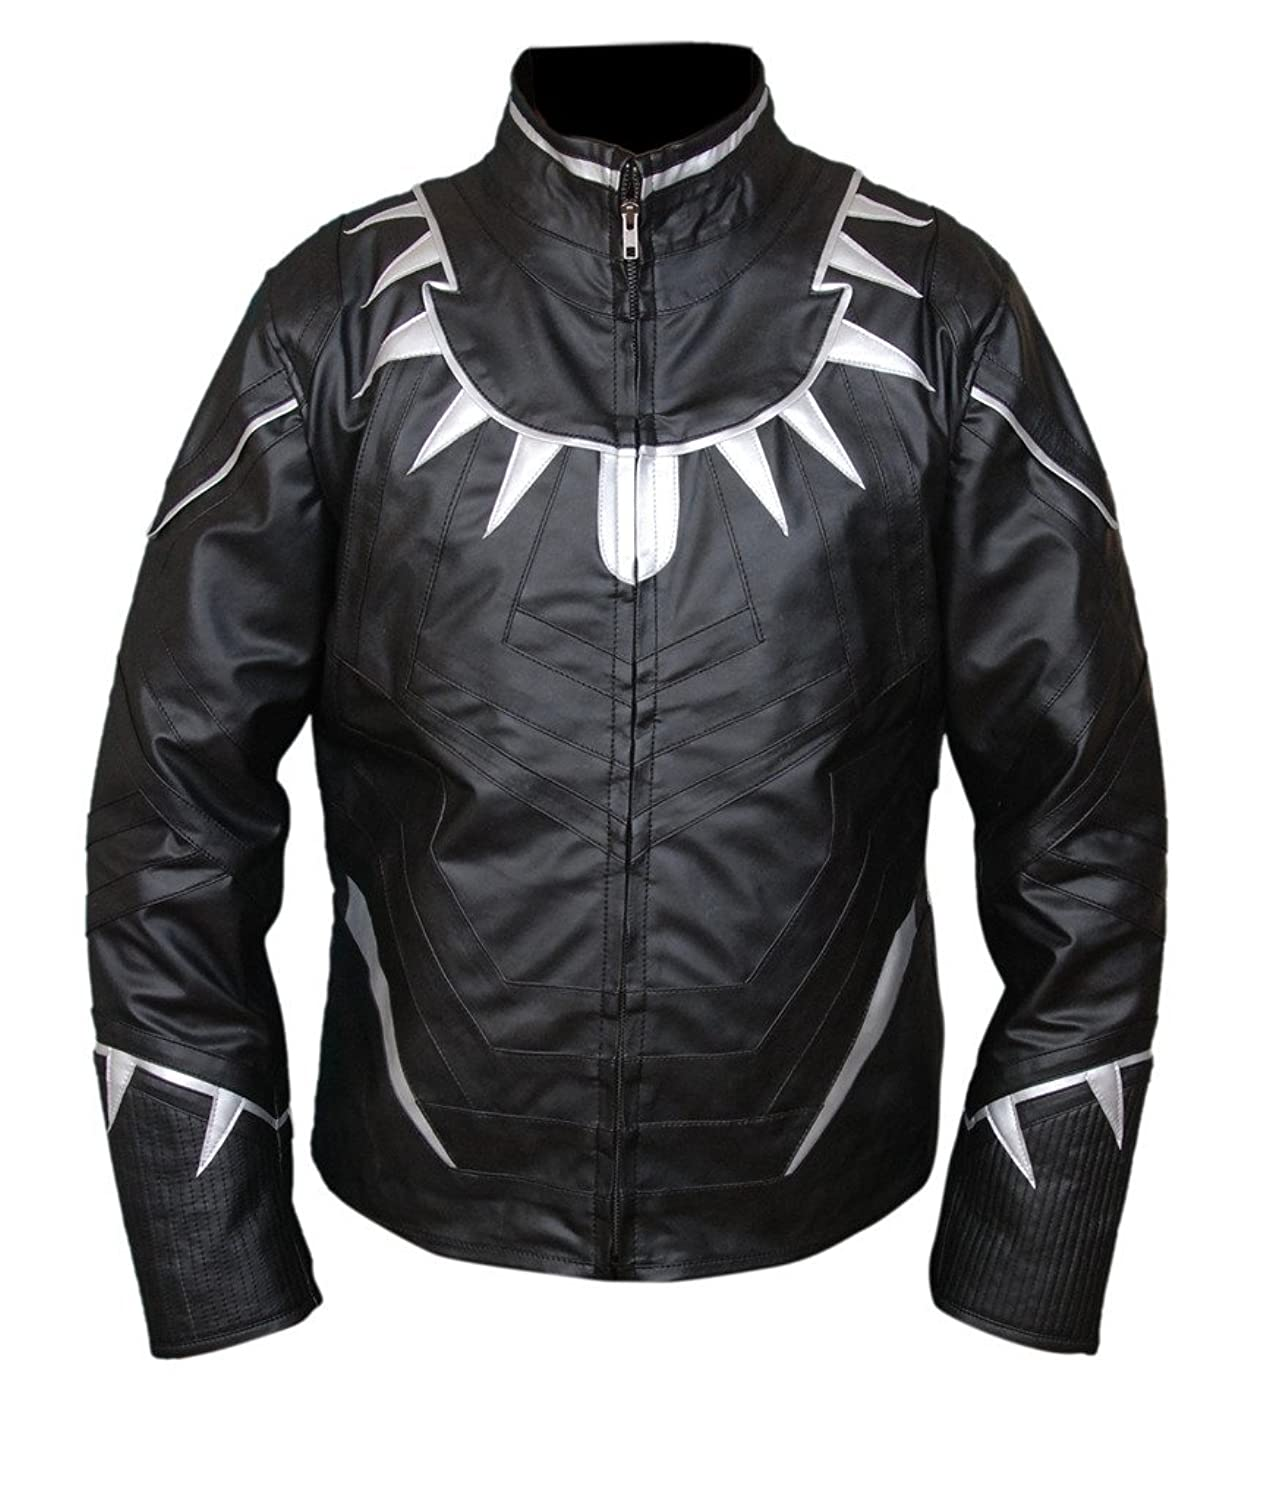 Captain America: Civil War Men's Black Panther Faux Leather Jacket - DeluxeAdultCostumes.com